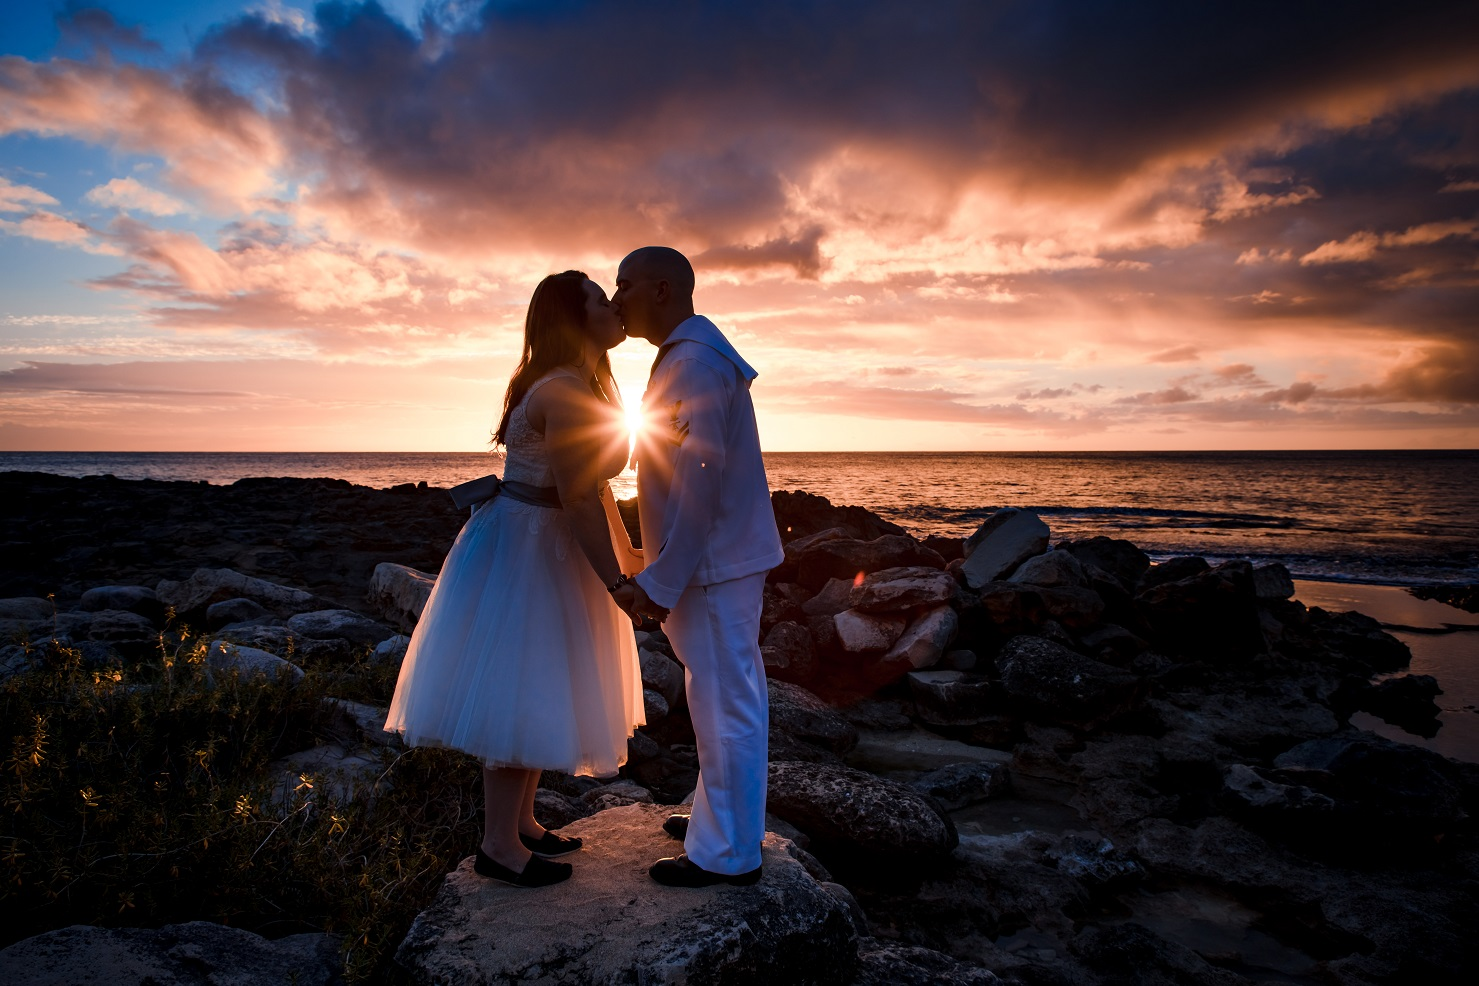 bride and groom sunset silhouette portrait